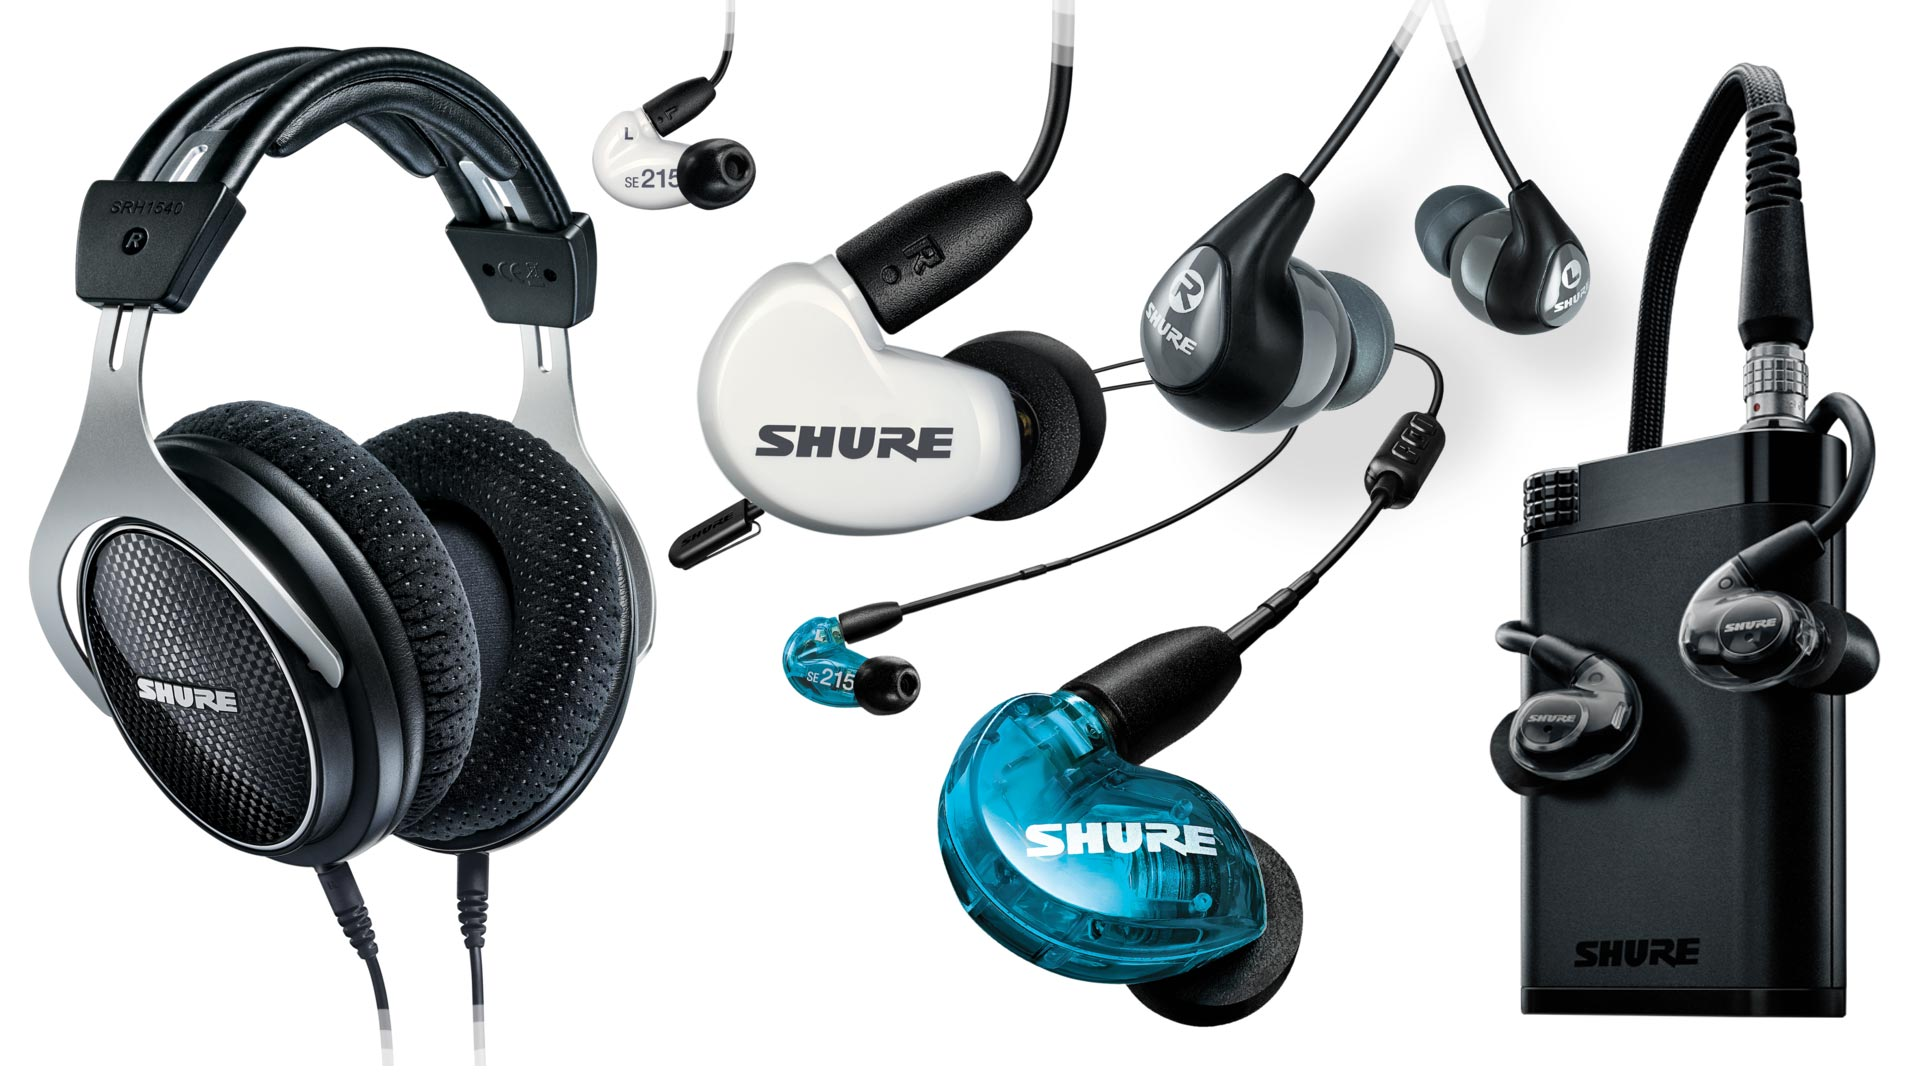 Complete Range Of Shure Headphones & Earphones | Unilet Sound & Vision